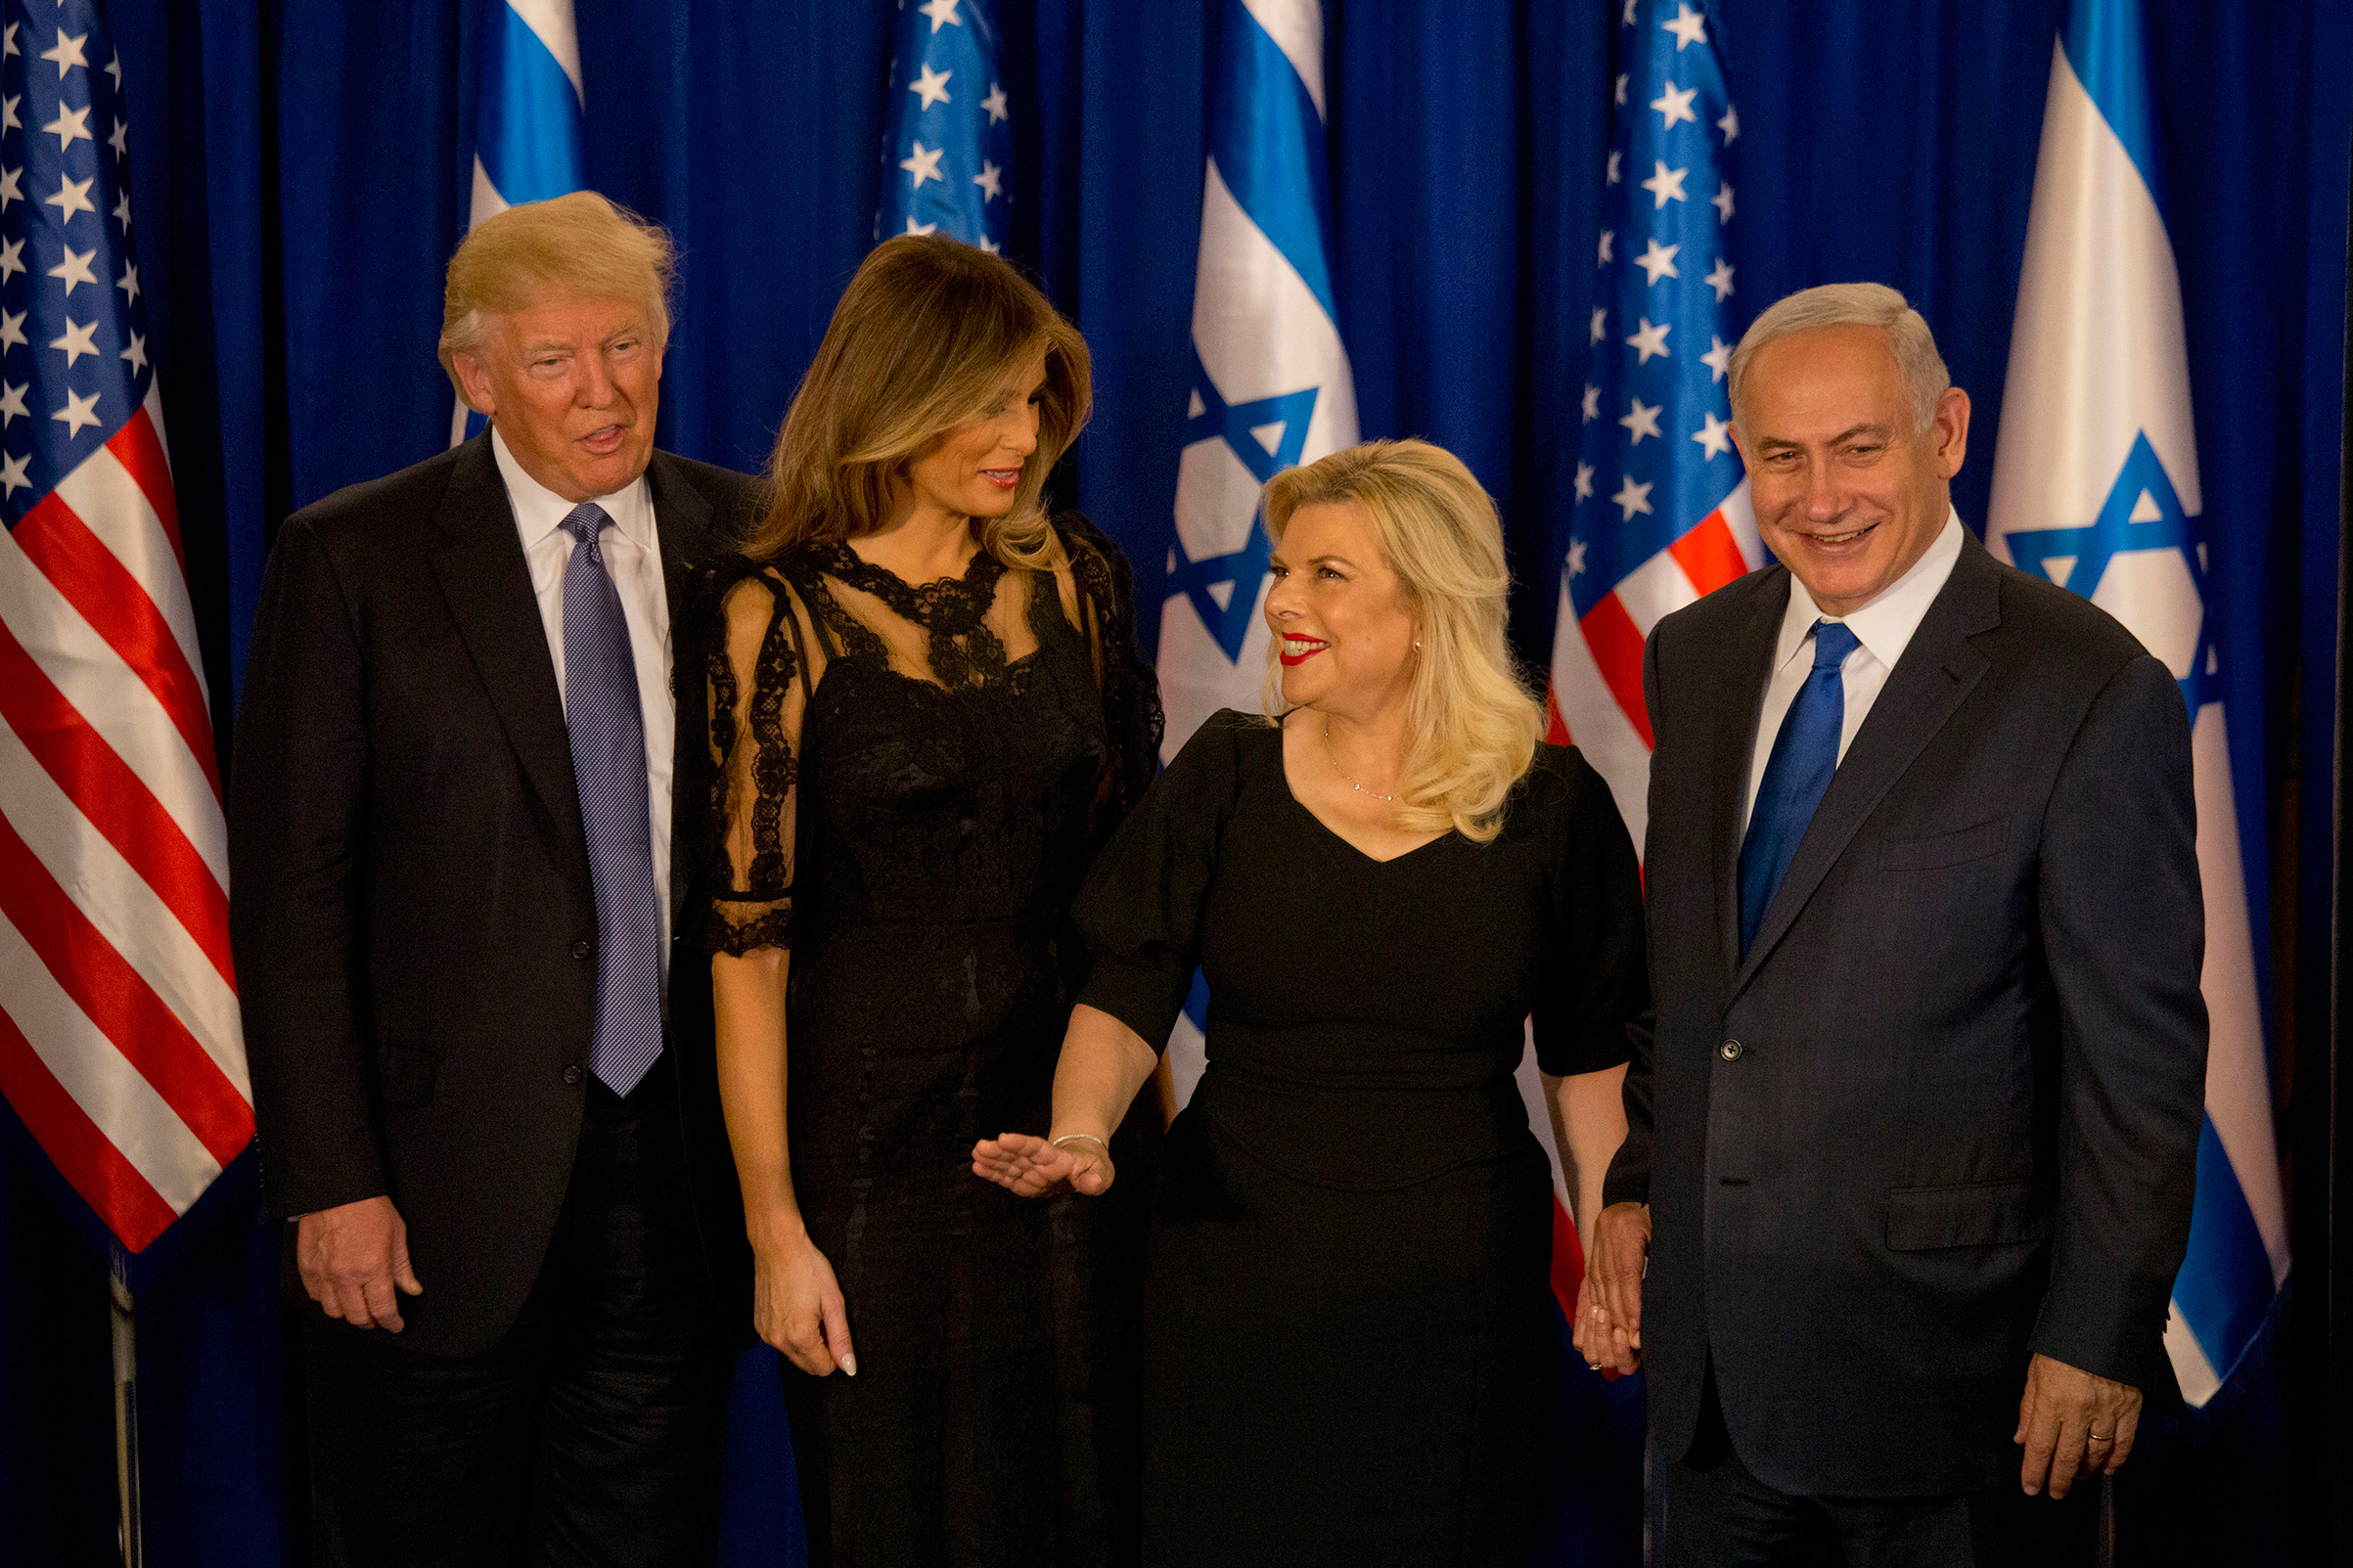 President Donald Trump and his wife Melania wearing Dolce & Gabbana, and Israeli Prime Minister Benjamin Netanyahu and his wife Sara stand after their meeting in Jerusalem                               Israel, May 22, 2017.